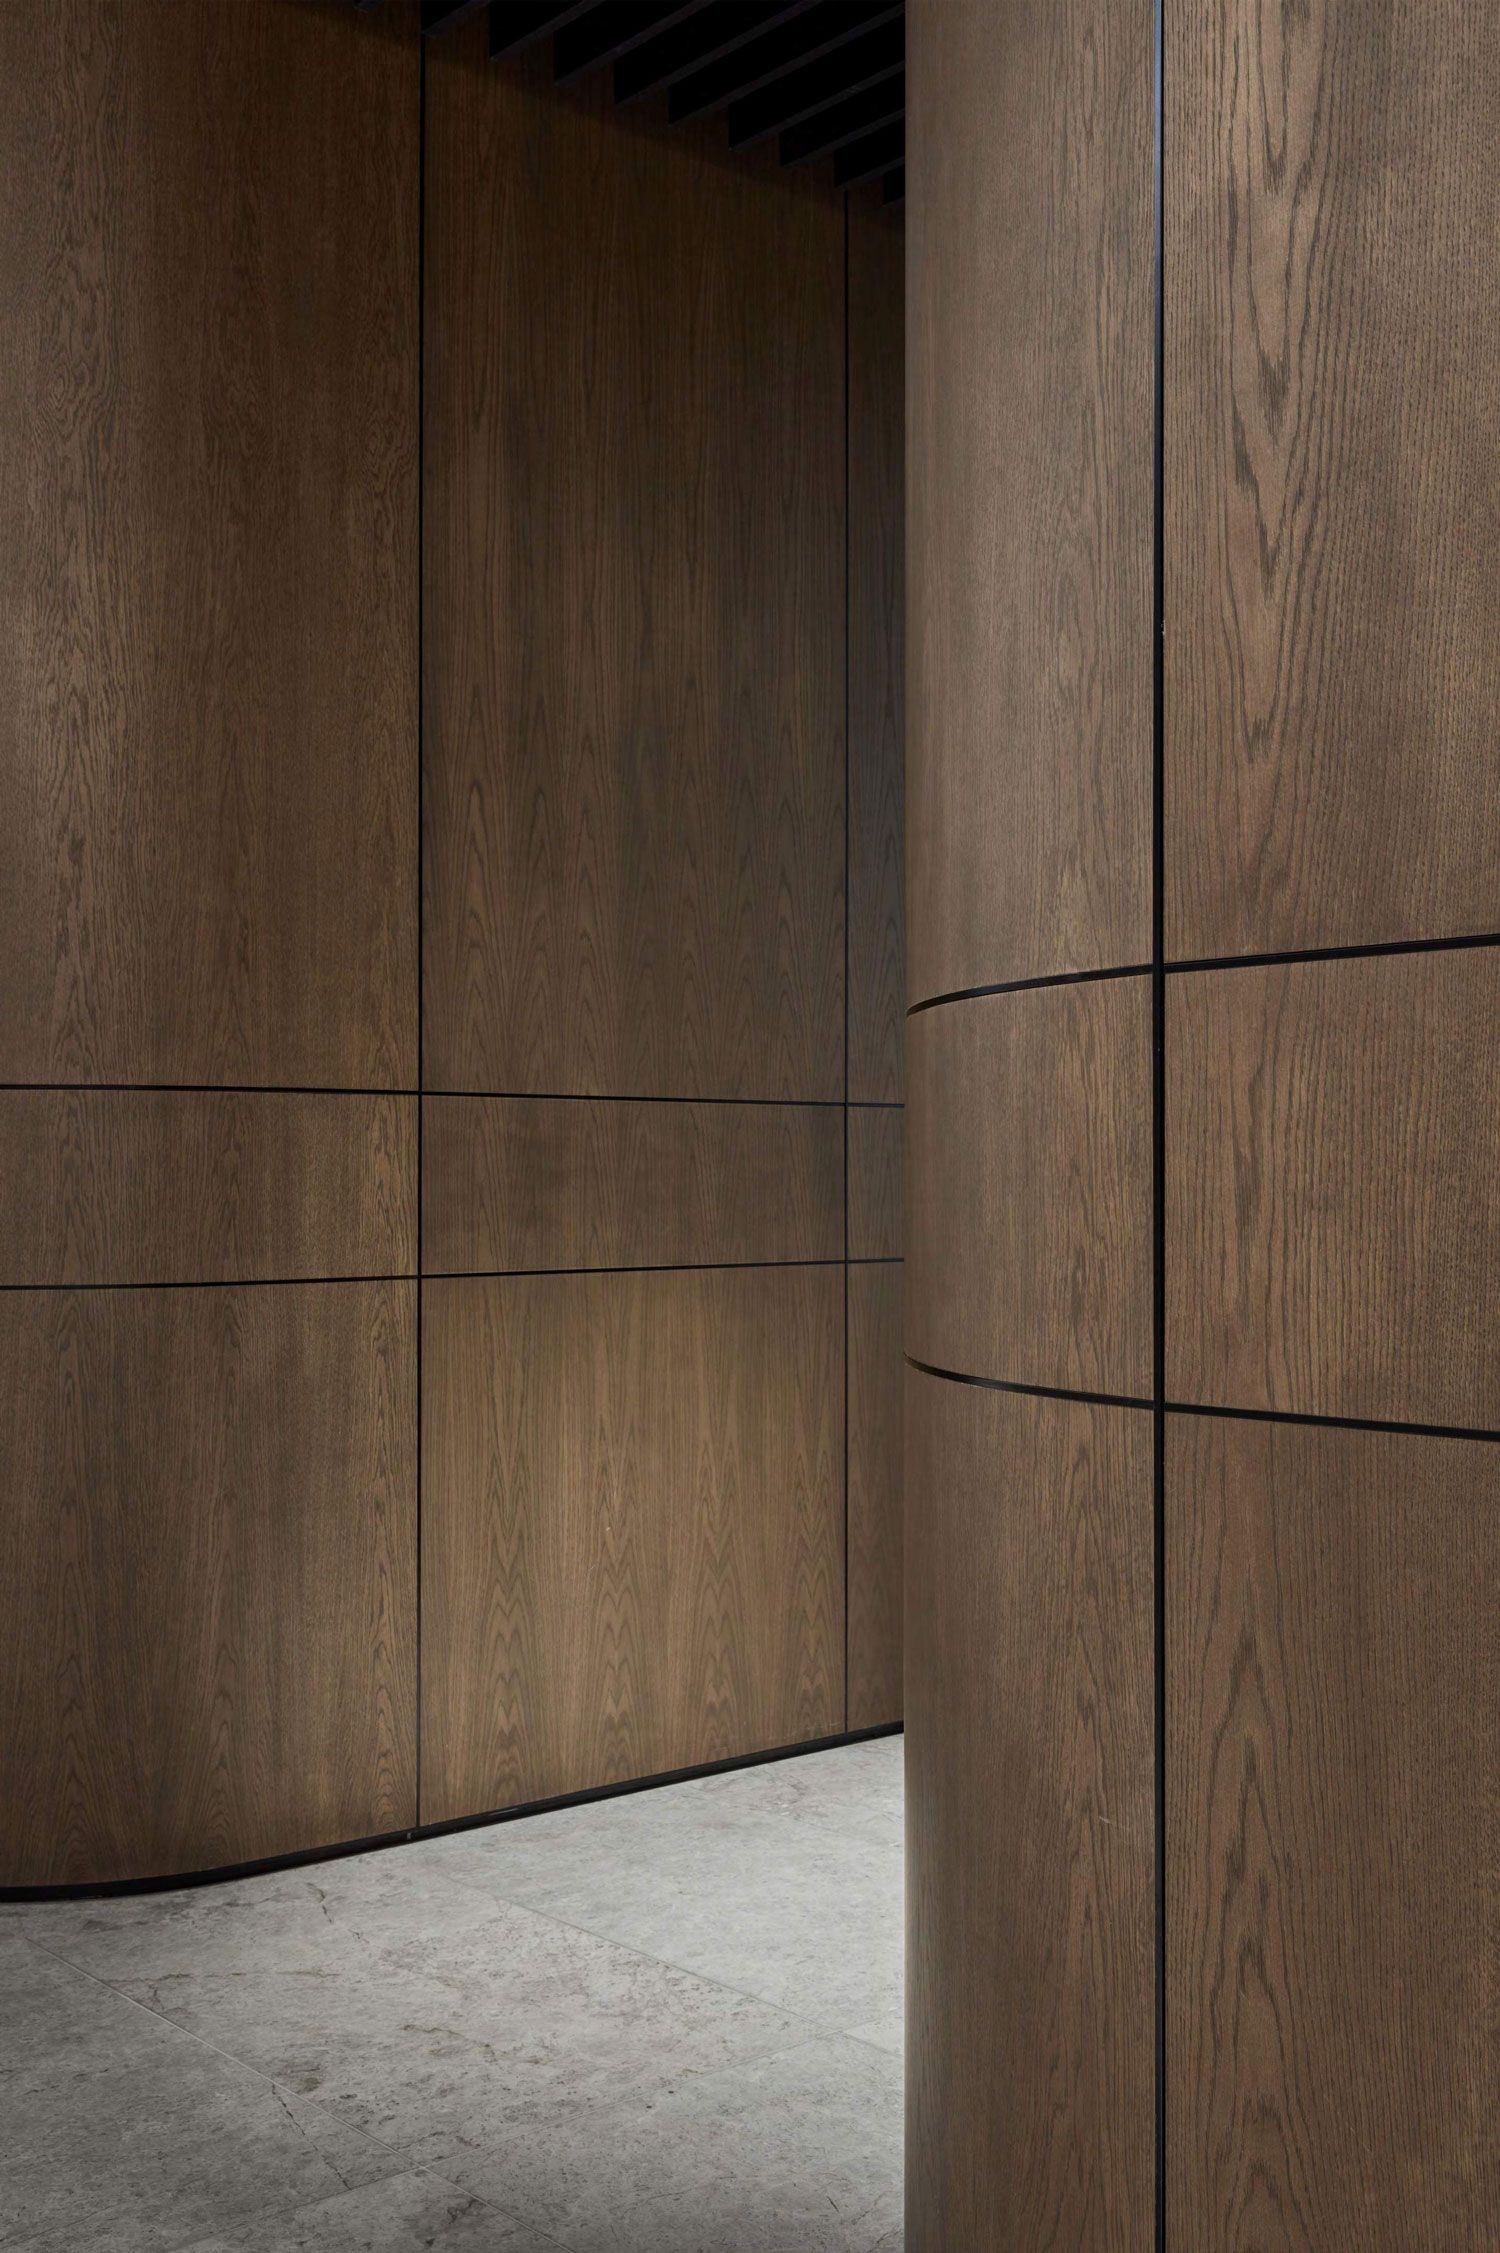 Interior Wood Paneling: PDG Melbourne Head Office By Studio Tate